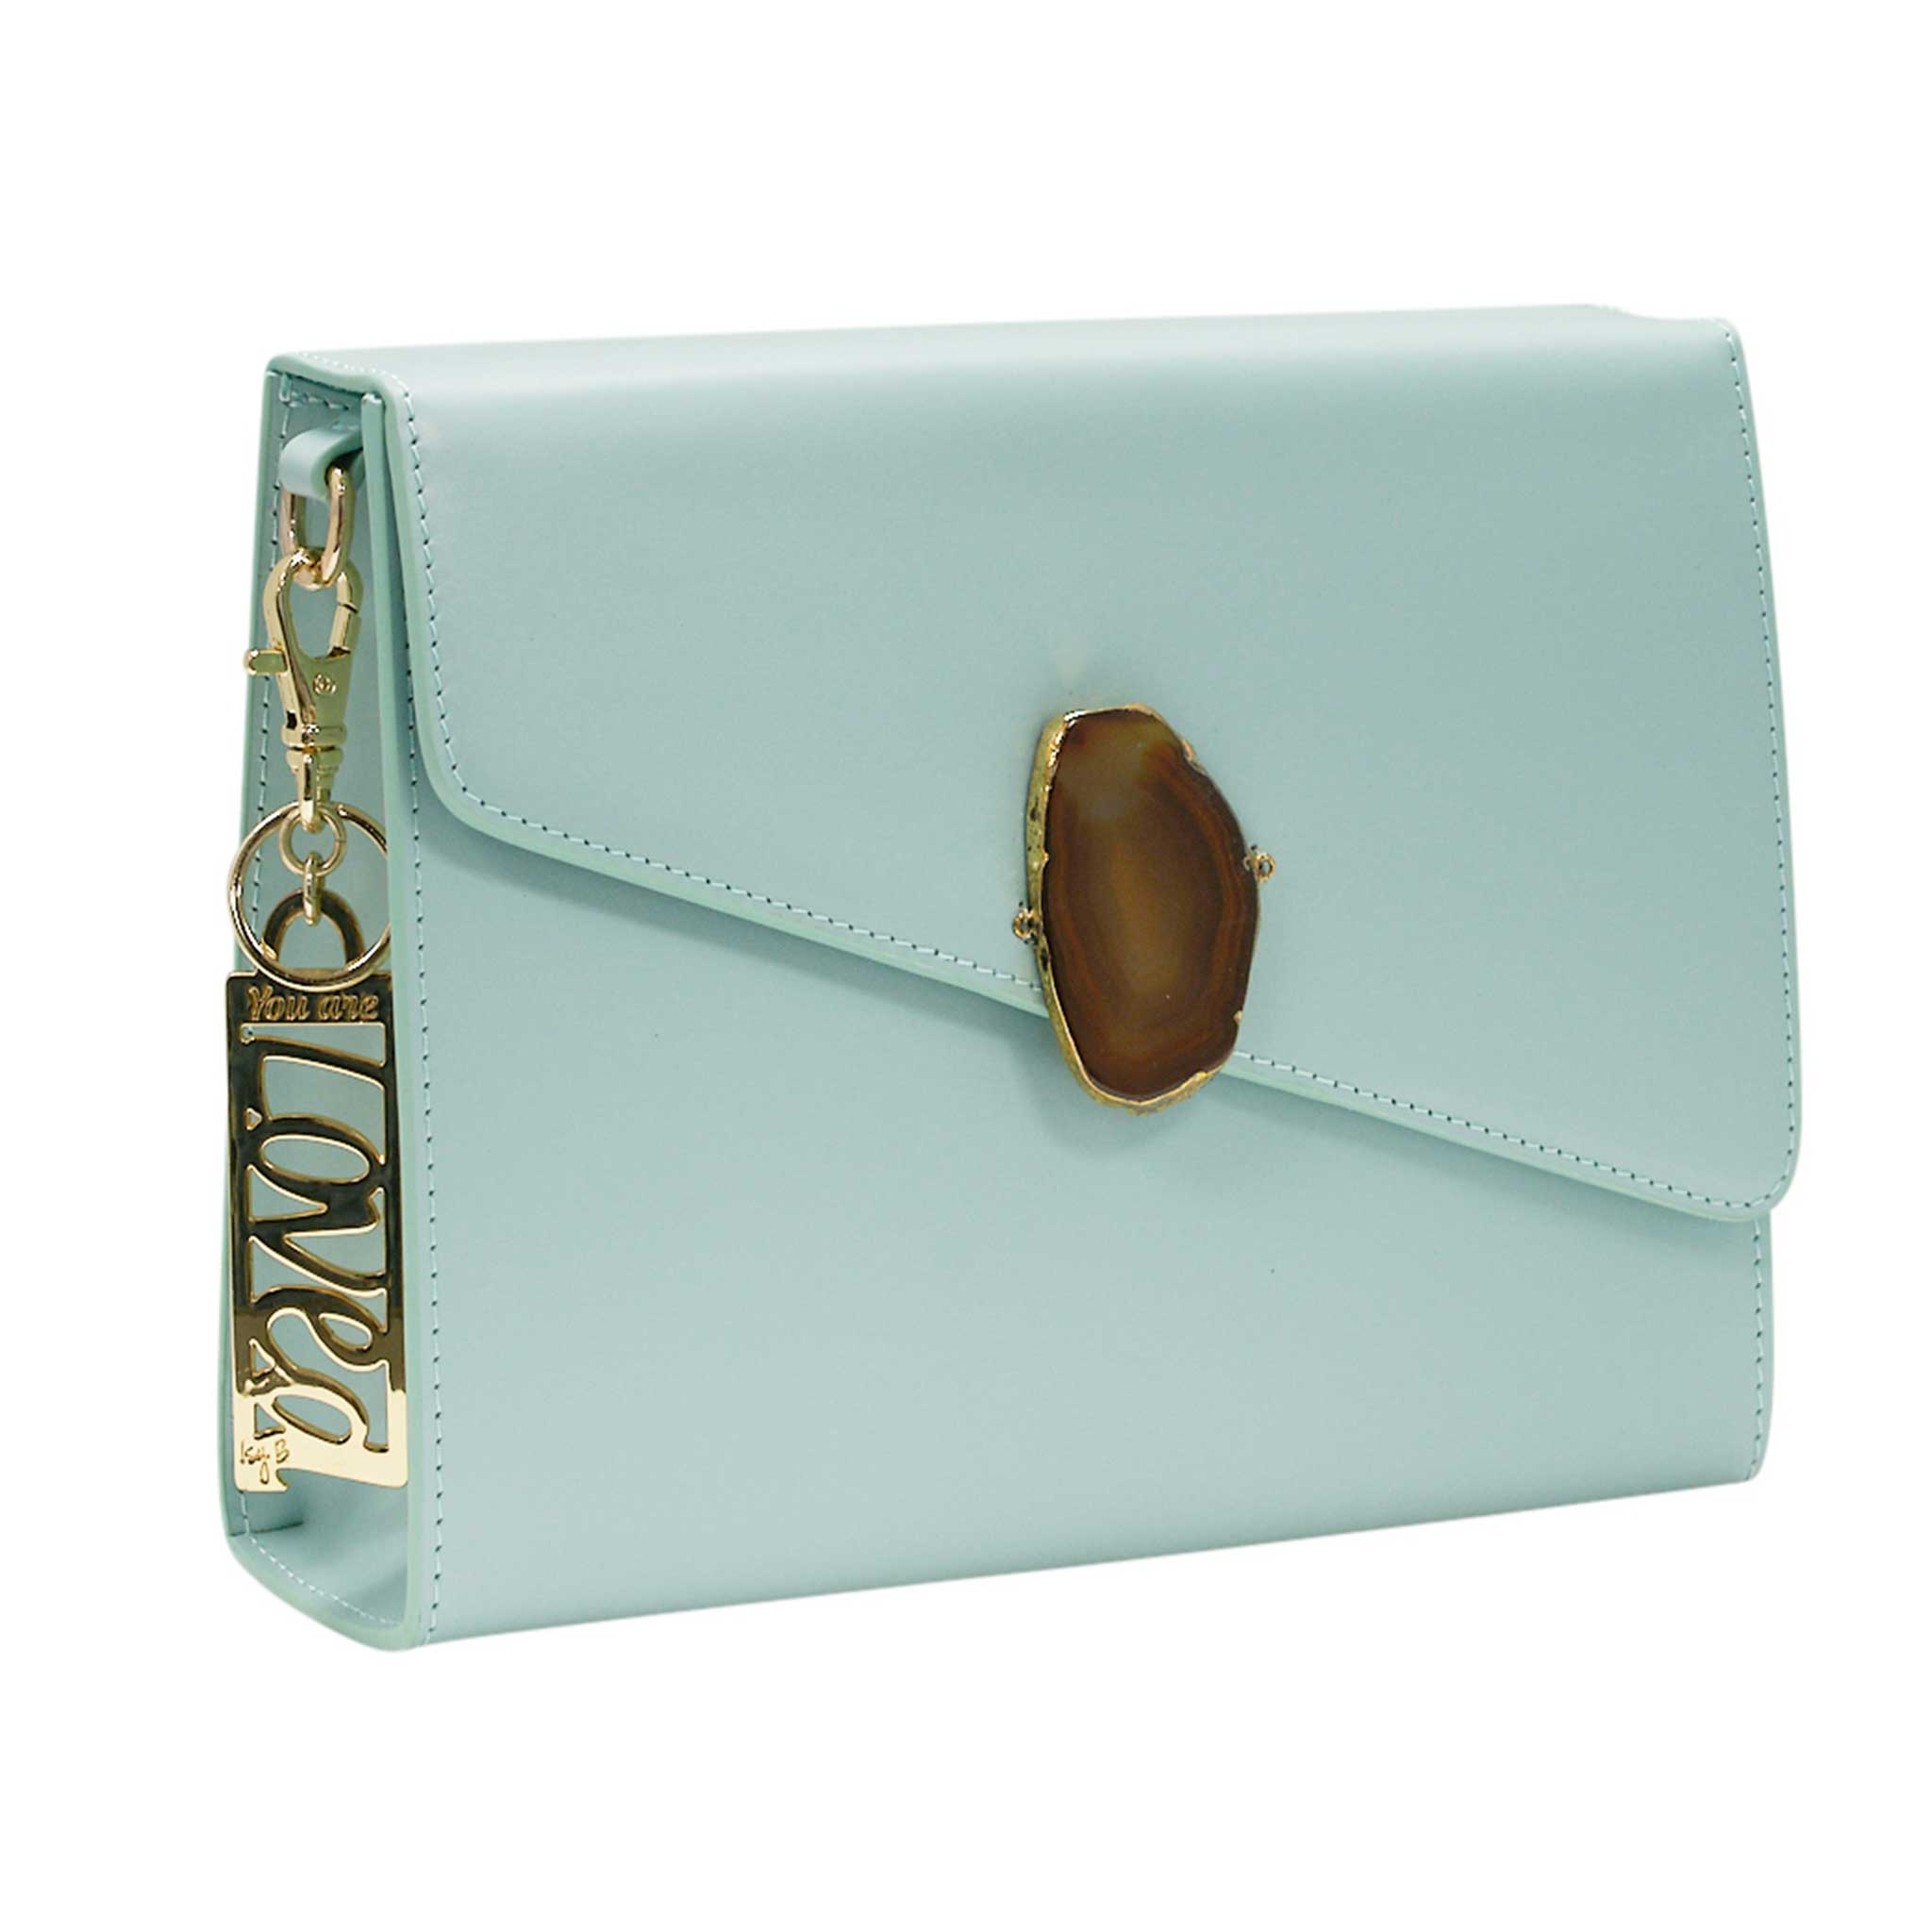 LOVED BAG - MOONSTONE WHITE LEATHER WITH BROWN AGATE - 1.02.001.040